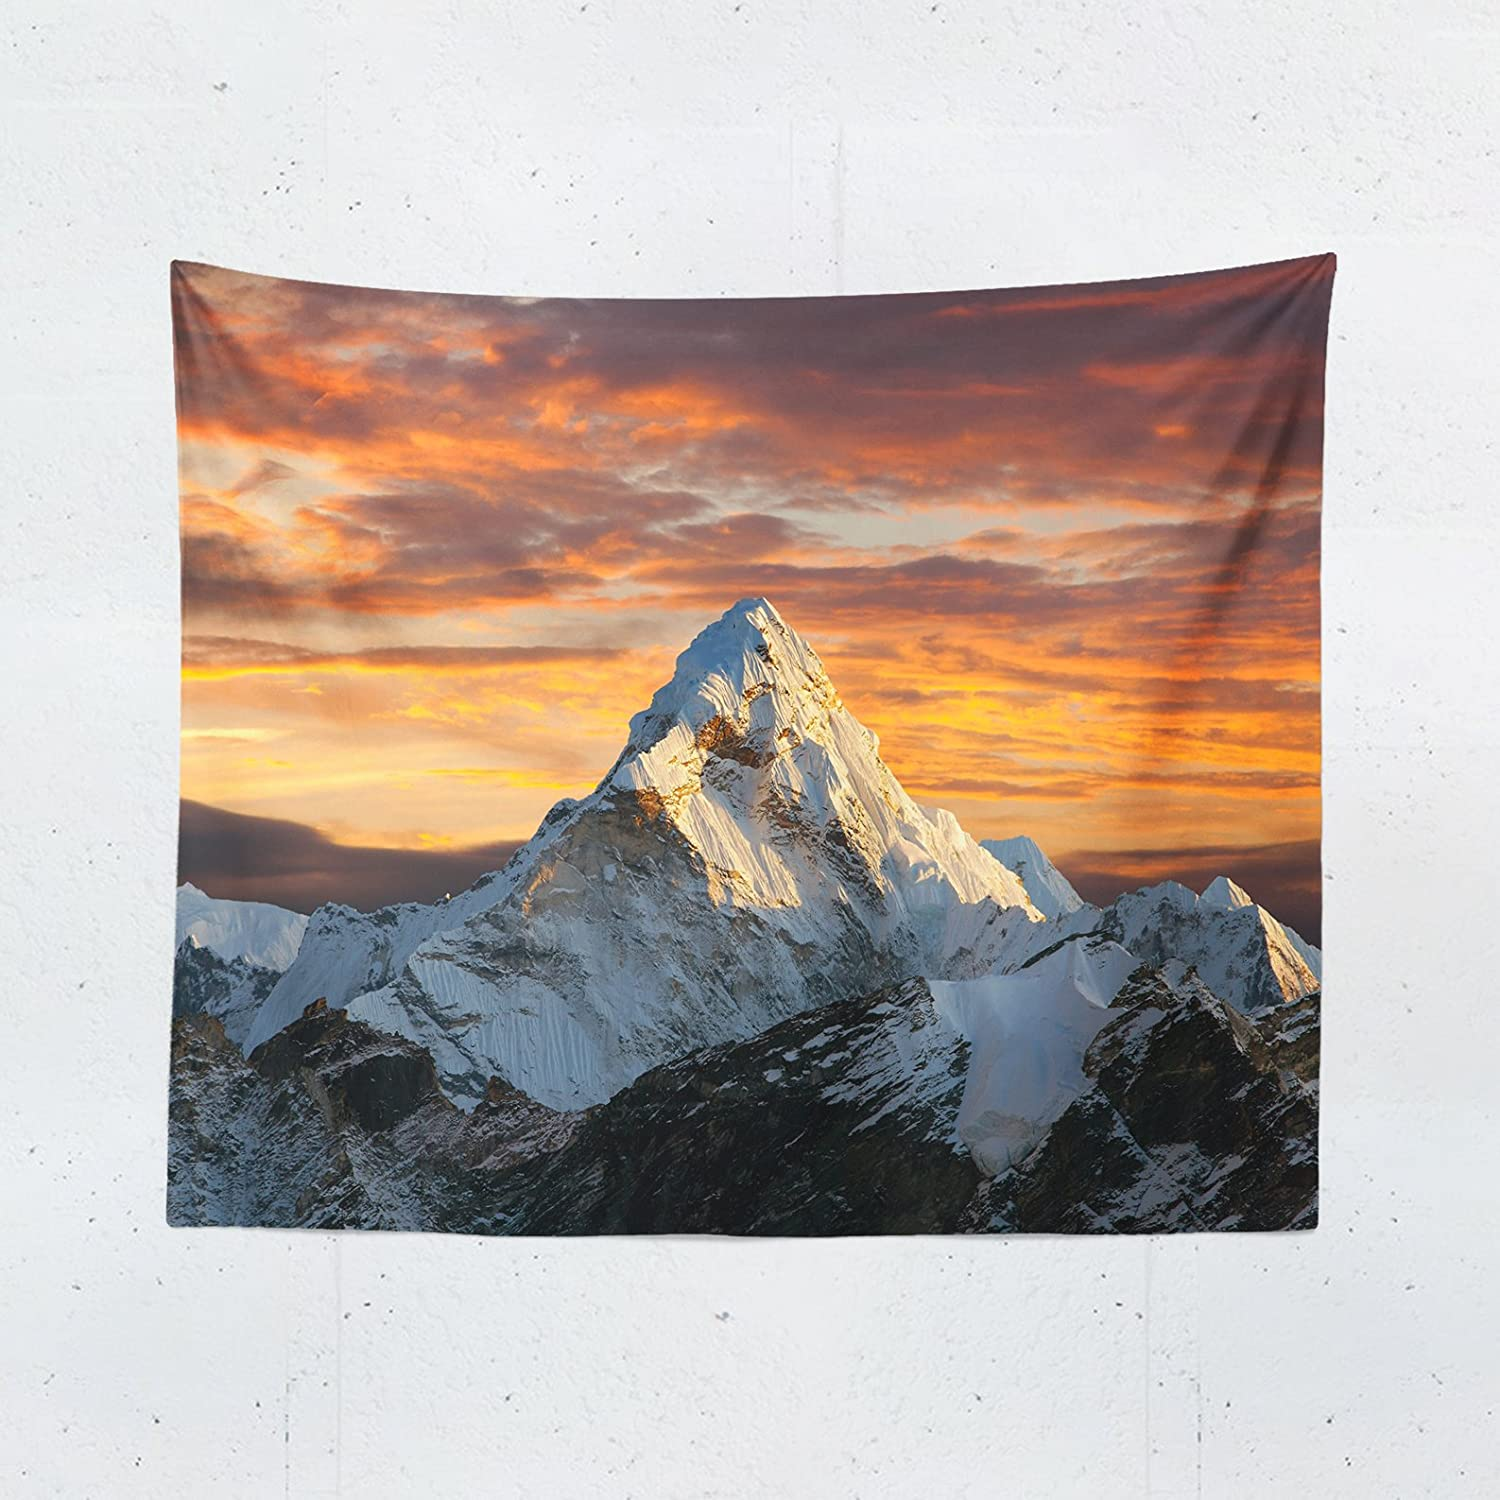 Mountain Tapestry - Landscape Scenic Nature Everest Wall Tapestries Hanging Décor Bedroom Dorm College Living Room Home Art Print Decoration Decorative - Printed in the USA - Small Medium Large Sizes